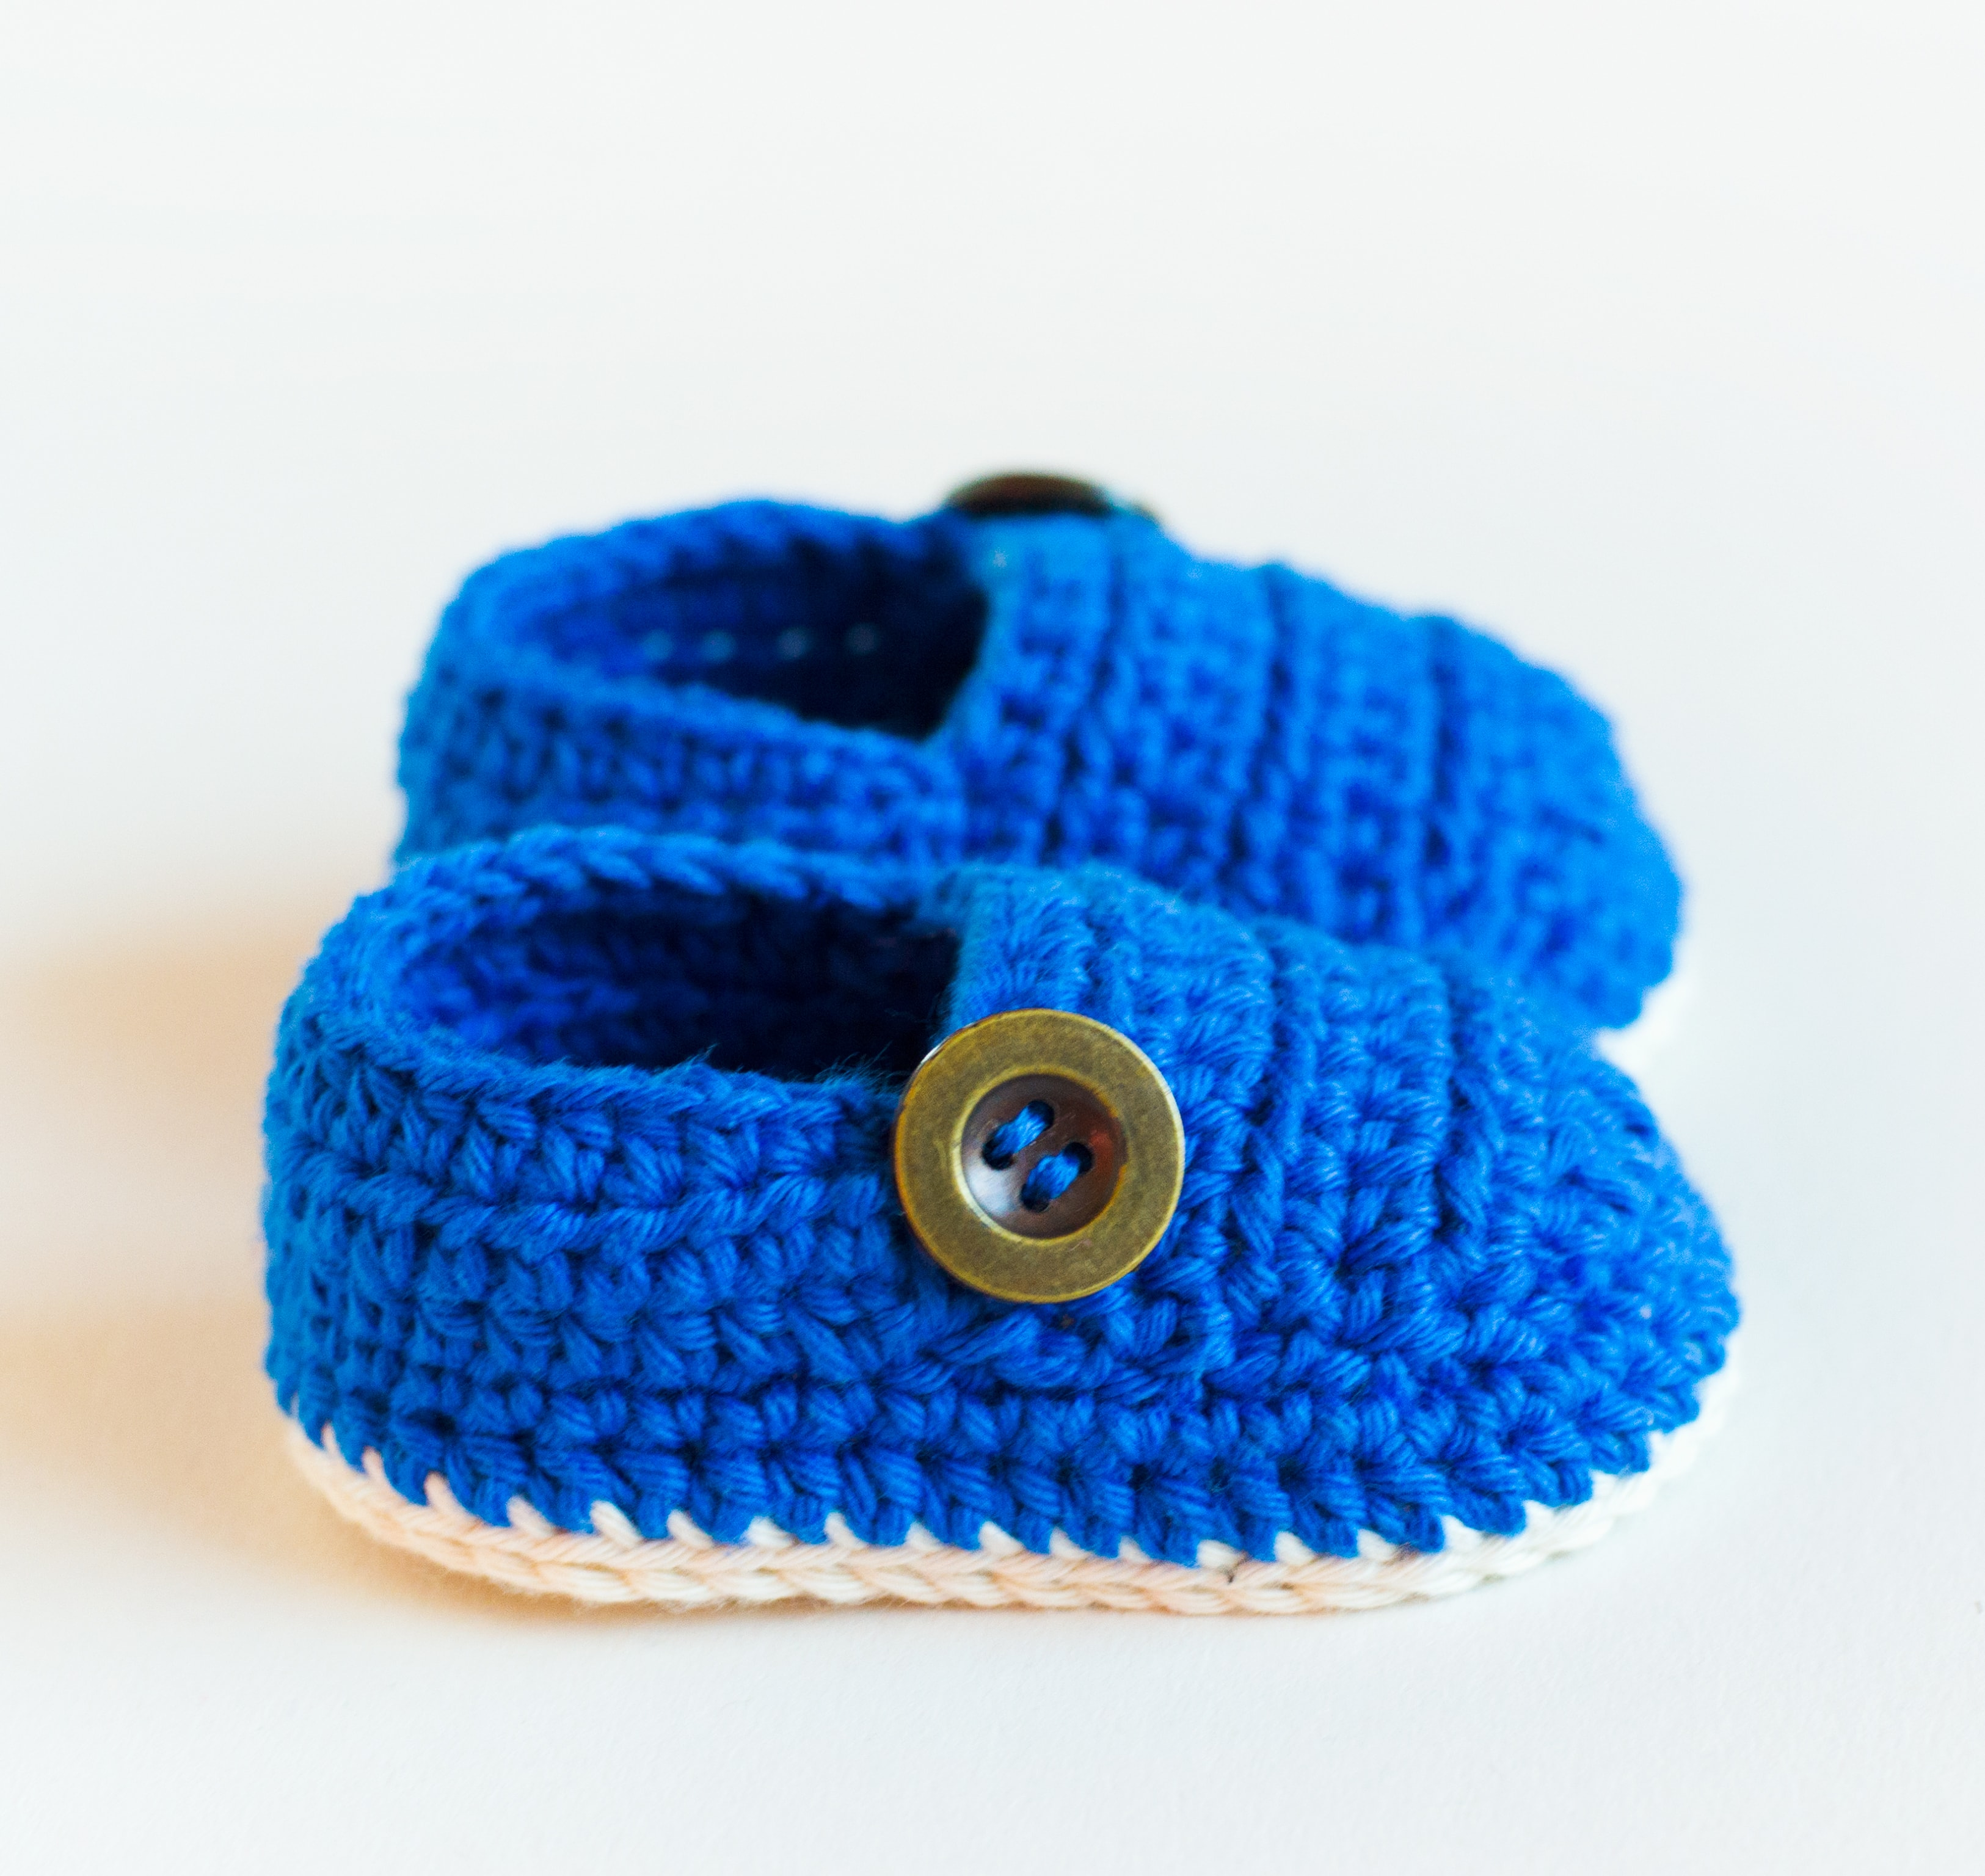 Crochet Patterns For Toddlers Slippers : Crochet Baby Booties ? GRANDPA SLIPPERS ? Croby Patterns